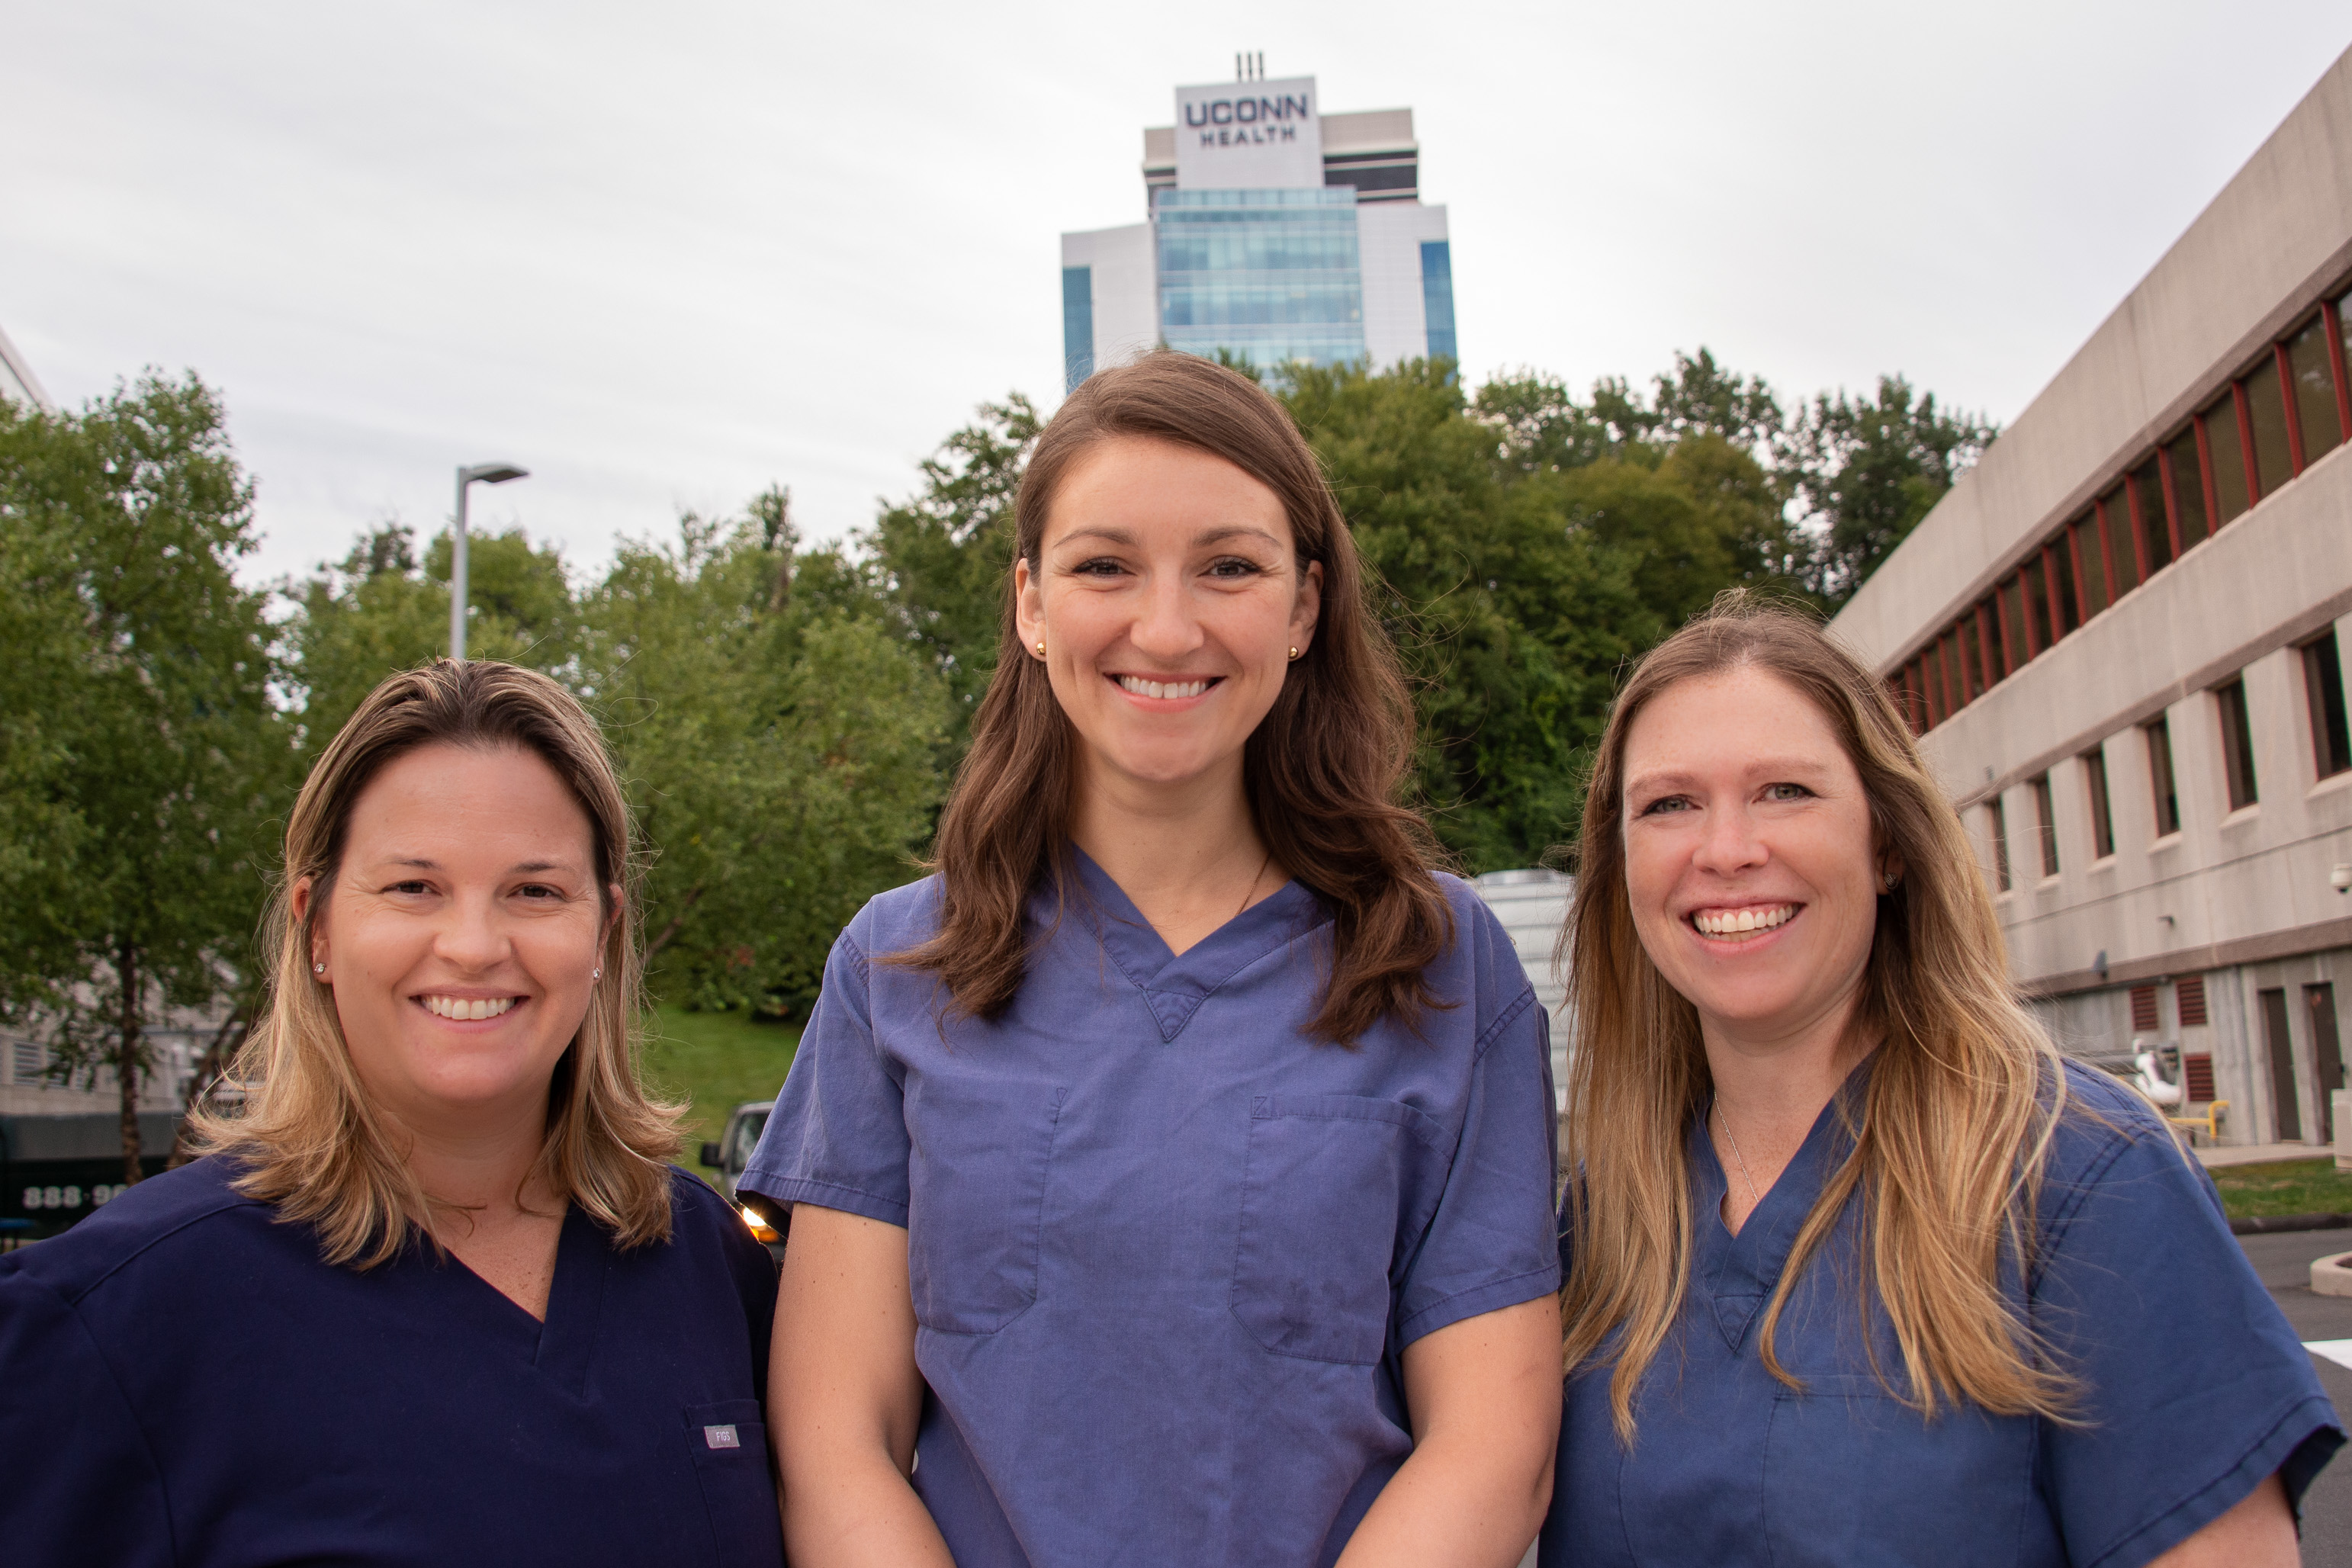 Drs. Kathy Coyner, Olga Solovyova, Lauren Geaney outside UConn Musculoskeletal Institute with University Tower in background